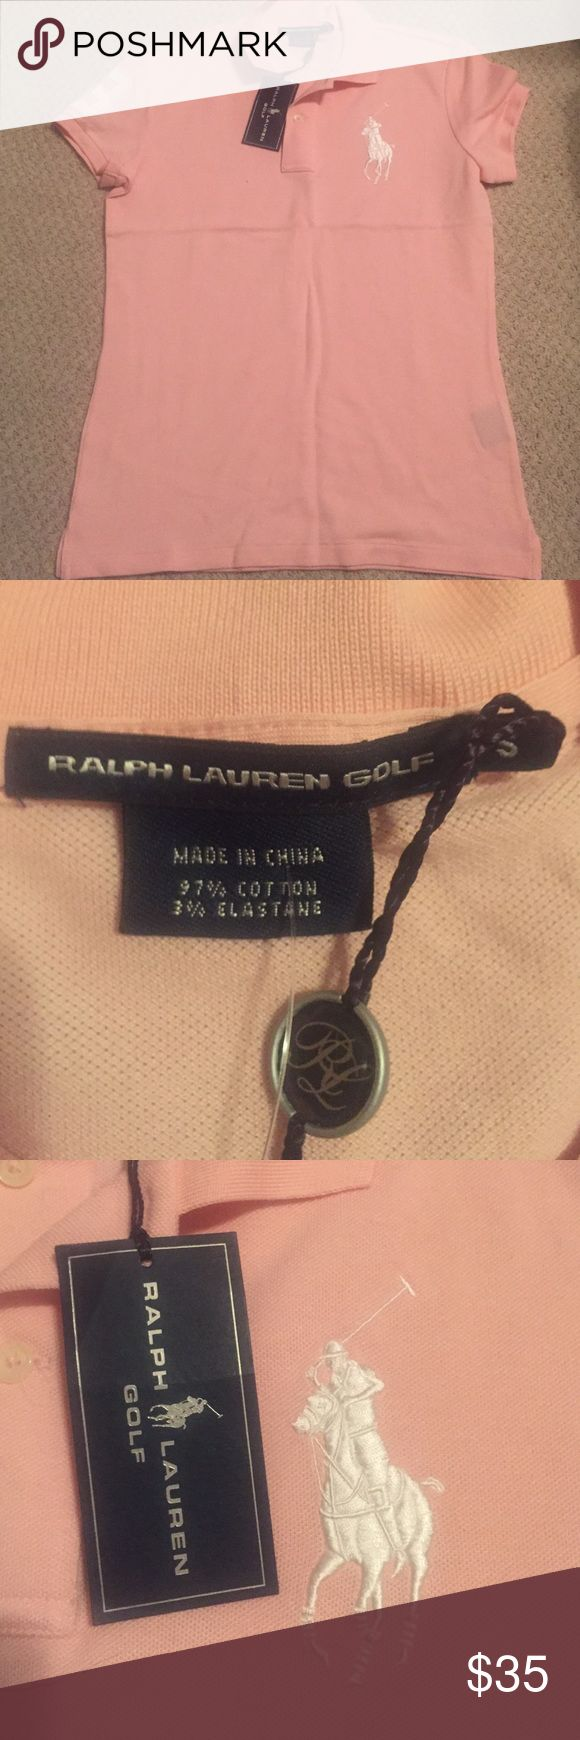 Polo Ralph Lauren Golf Women's Polo Ralph Lauren Golf Polo. Size S. Great Condition. New With Tags. Polo by Ralph Lauren Tops Blouses